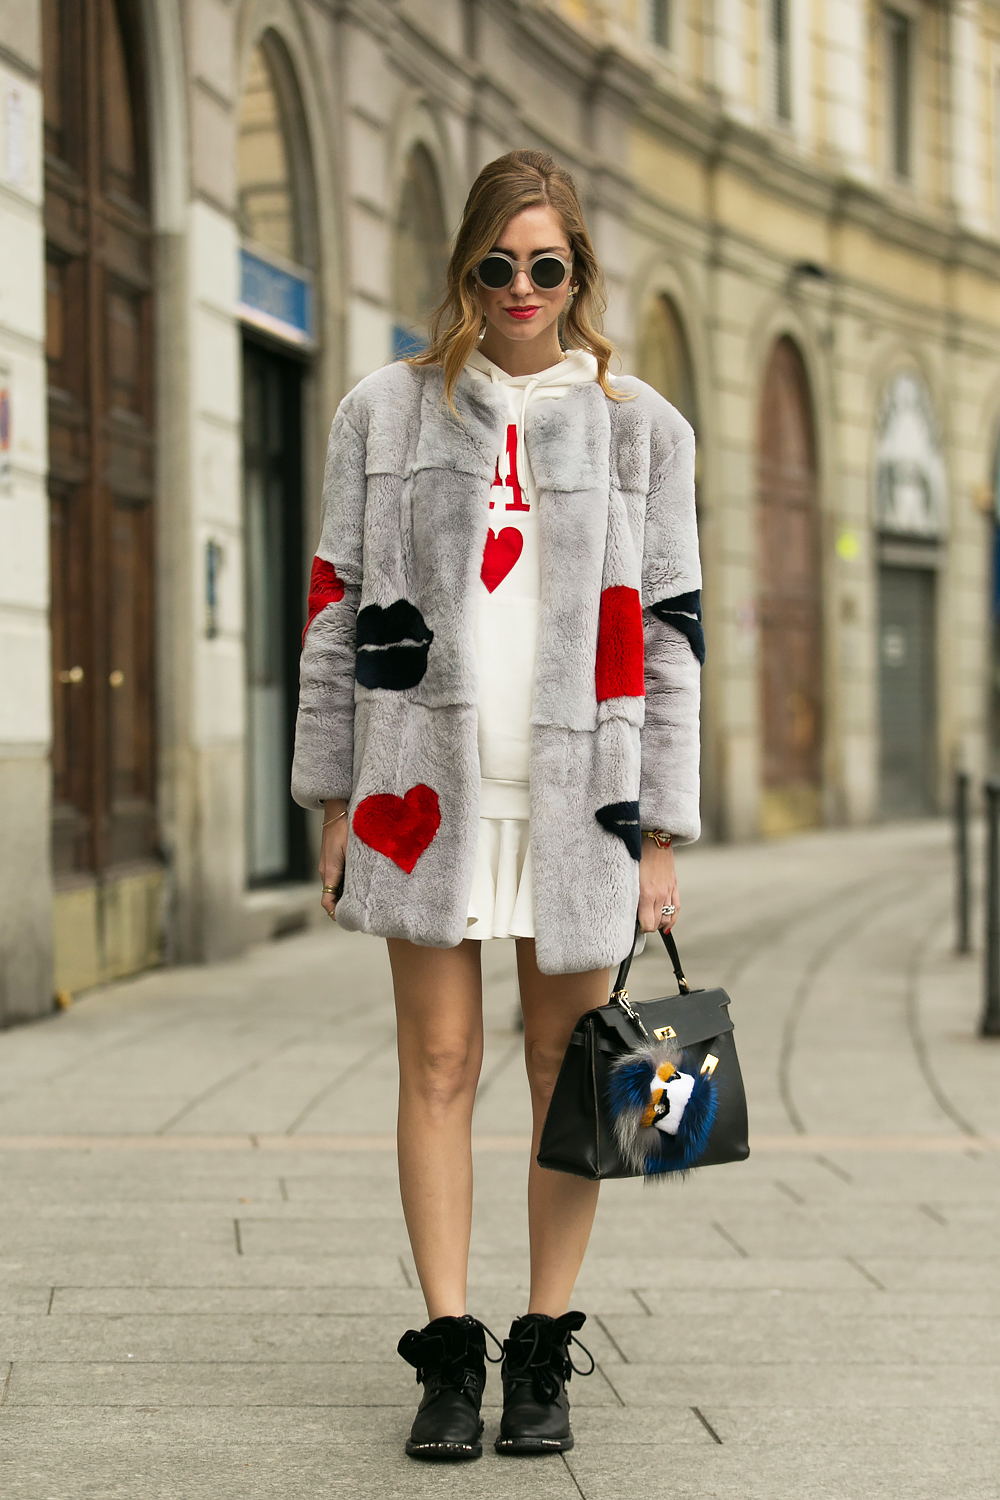 Chiara Ferragni One On One With Lightaholic At Milan